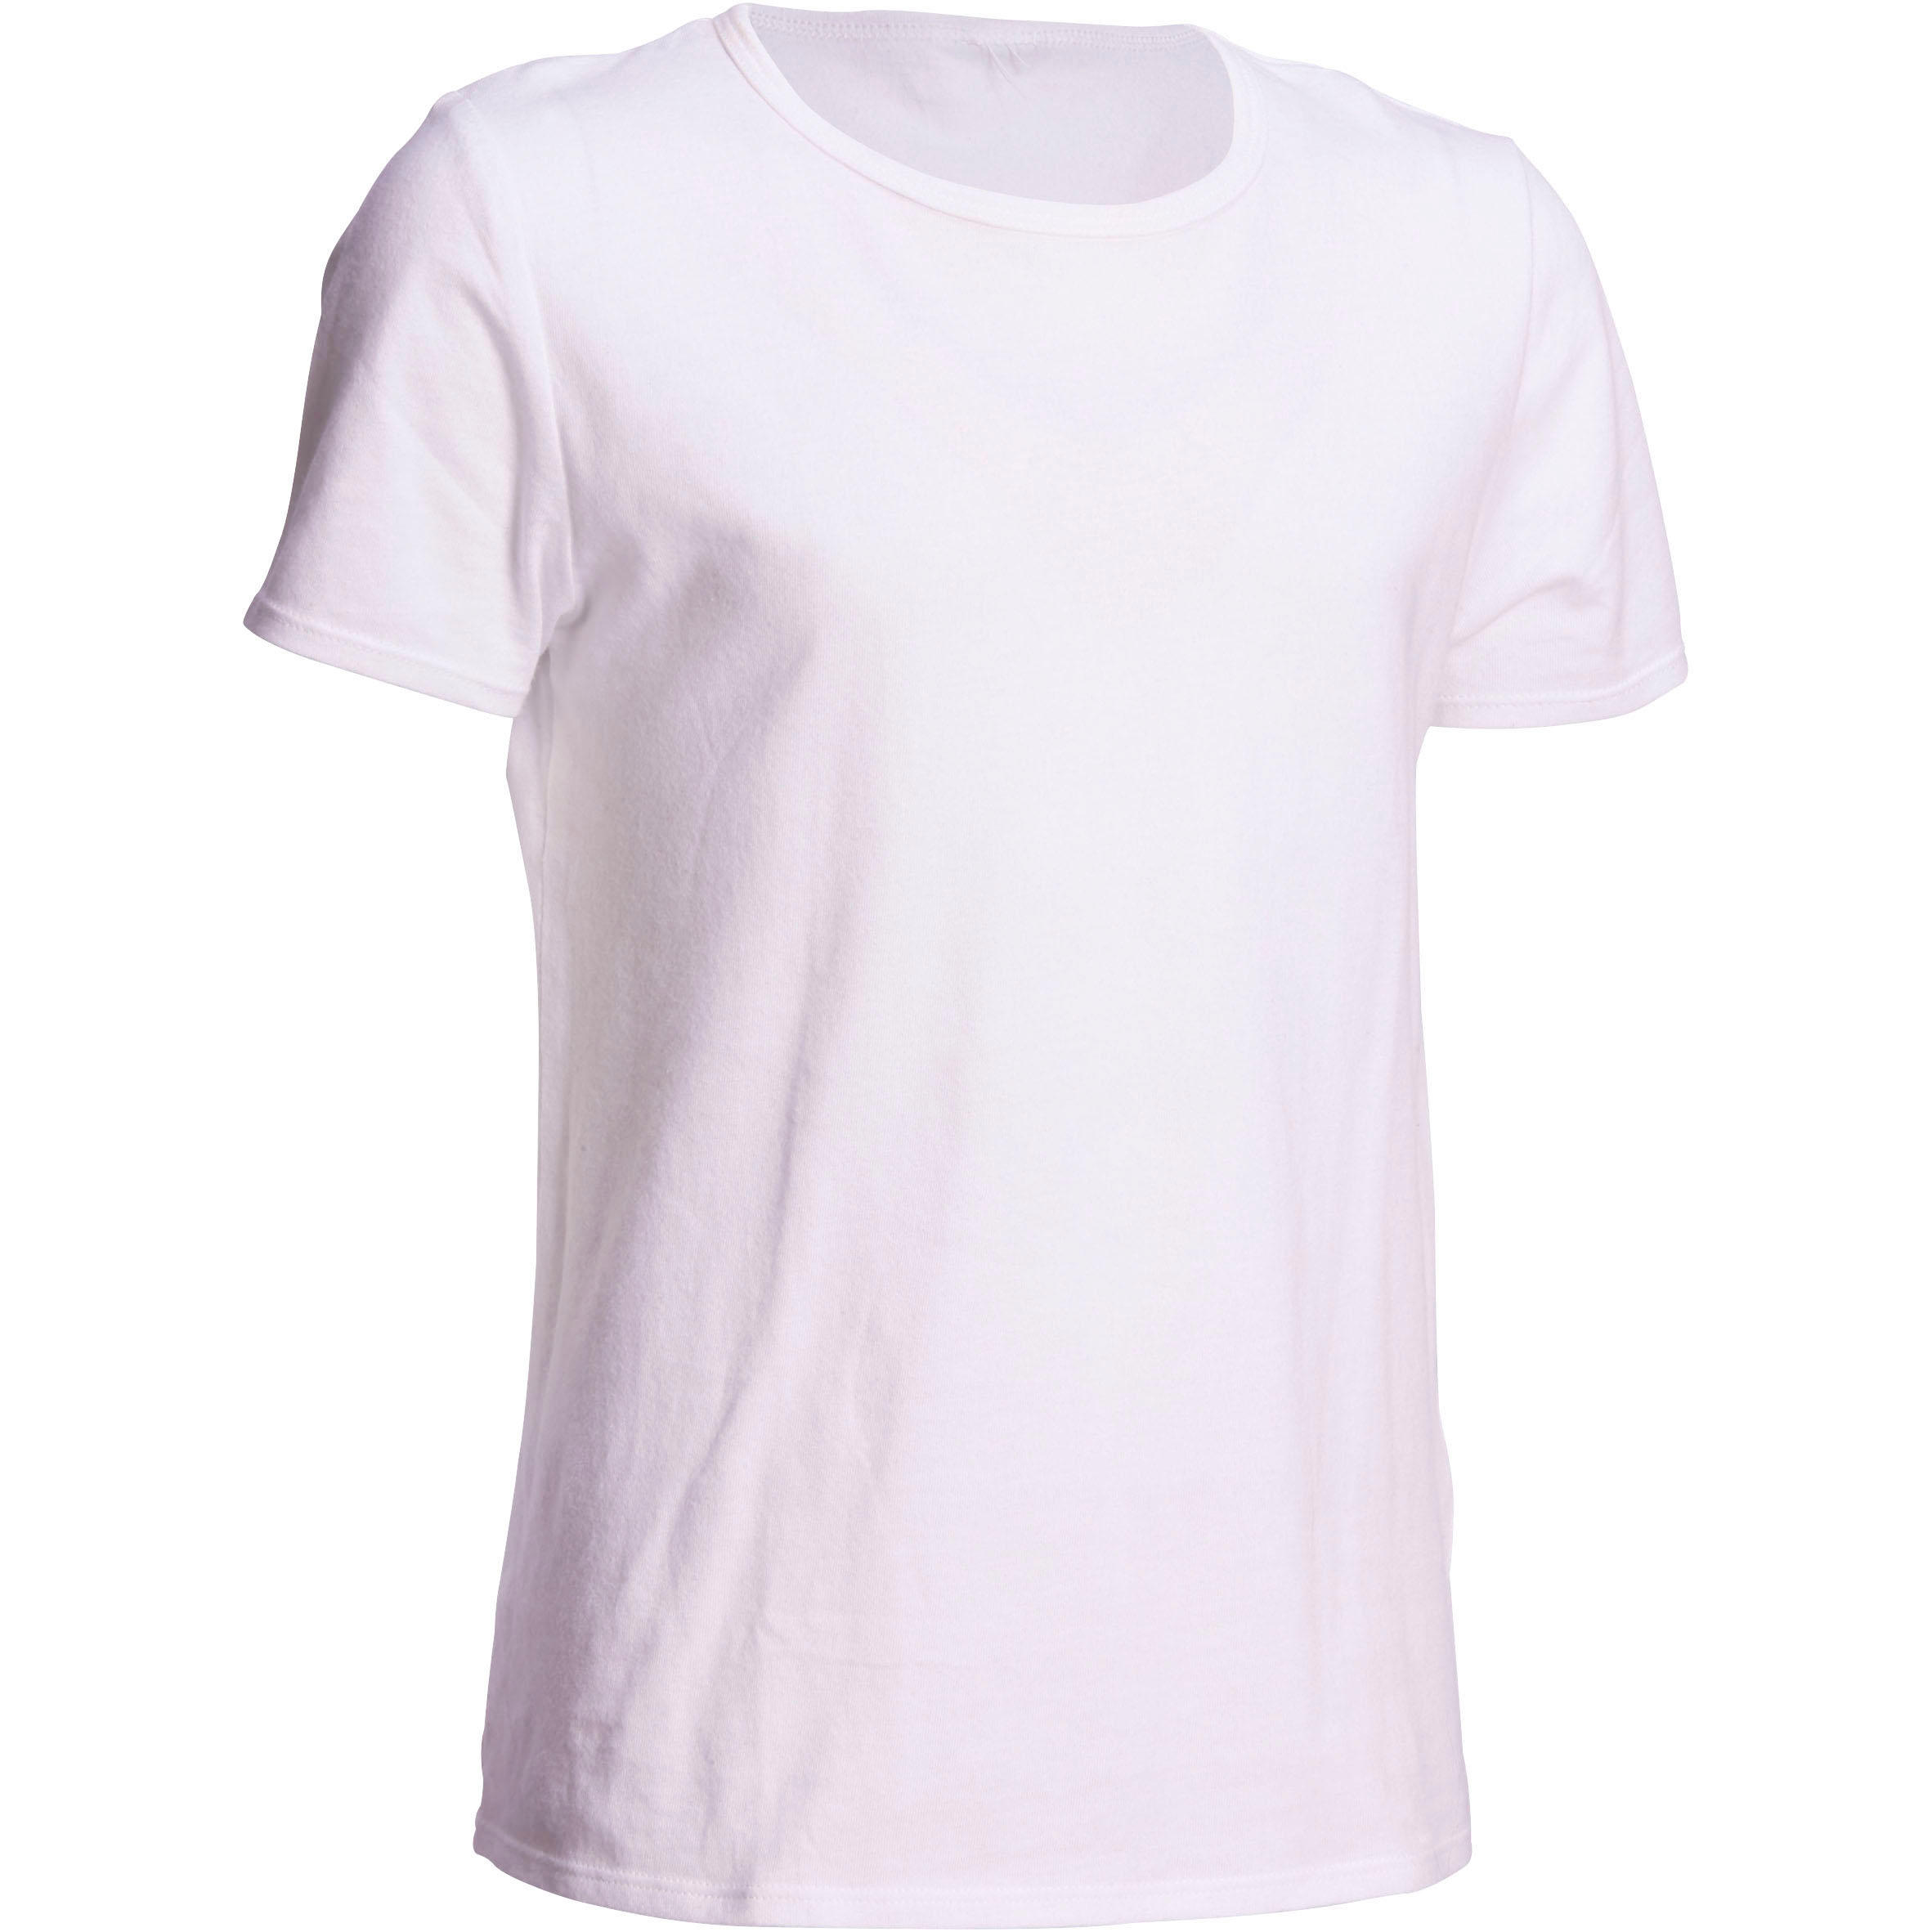 Boys' Short-Sleeved Gym T-Shirt - White